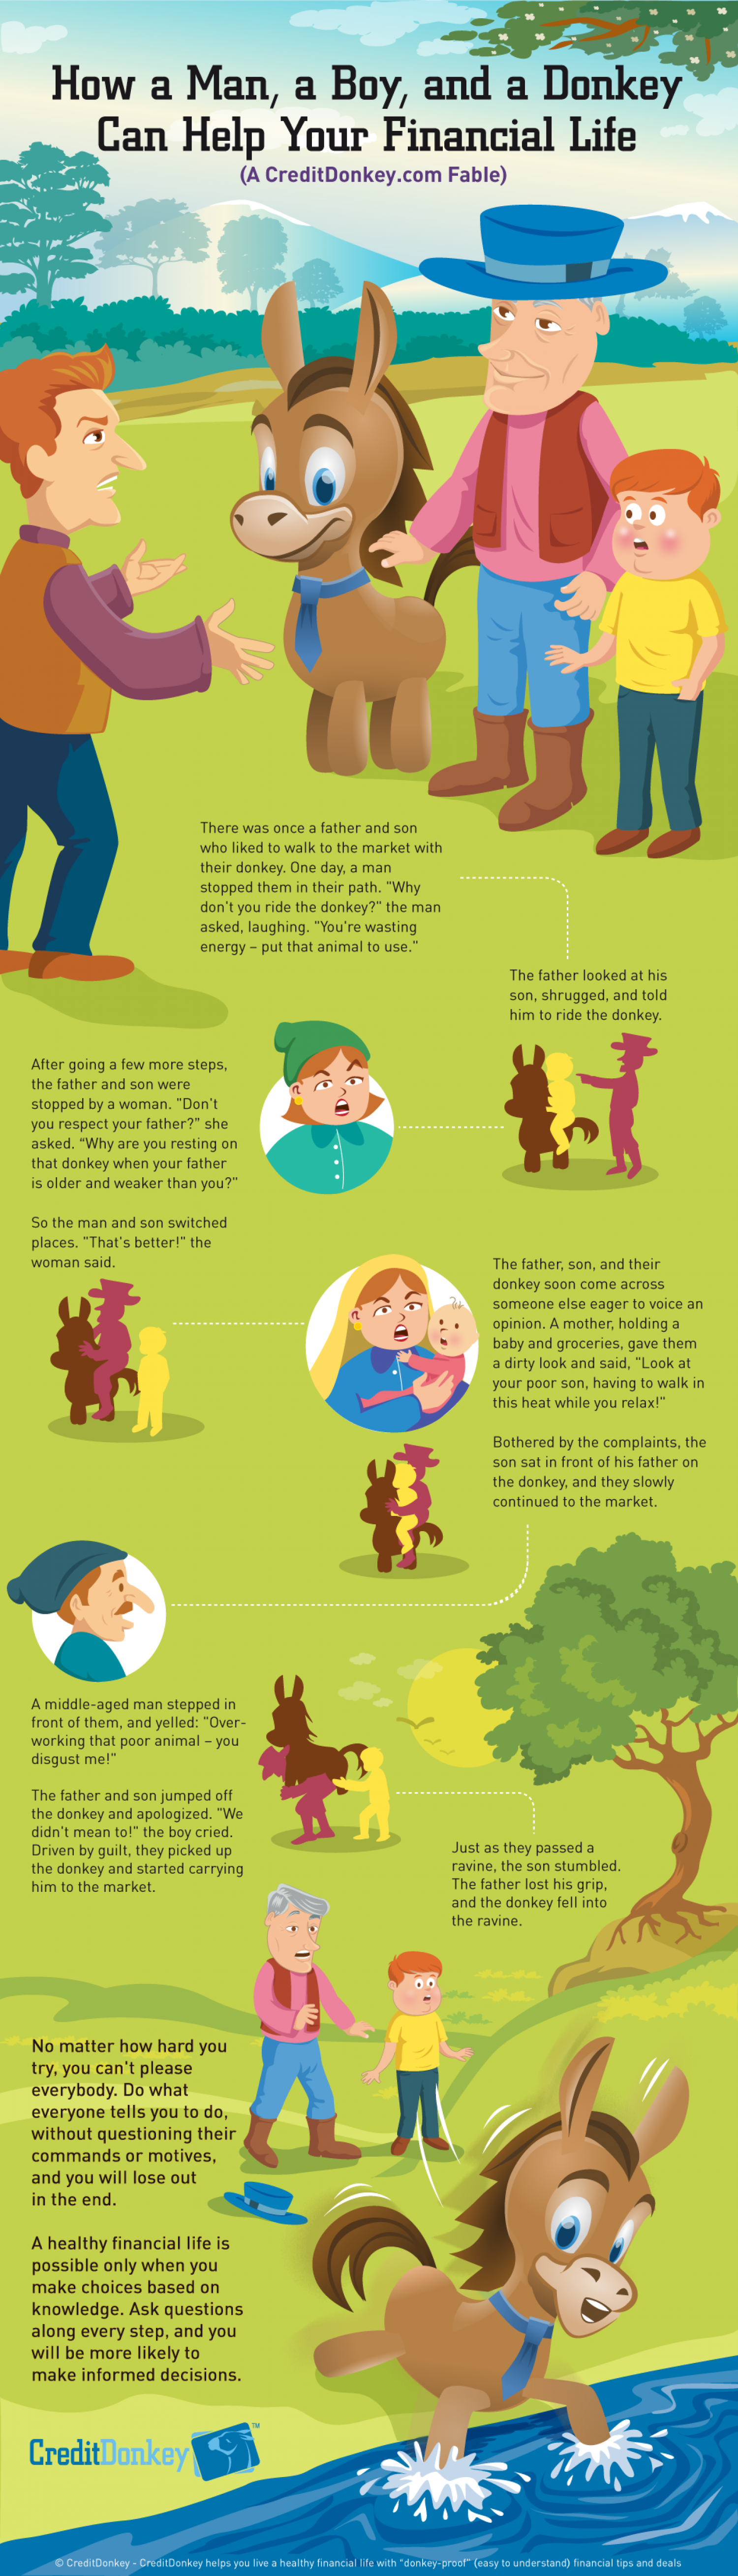 How a Man, a Boy, and a Donkey Can Help Your Financial Life Infographic